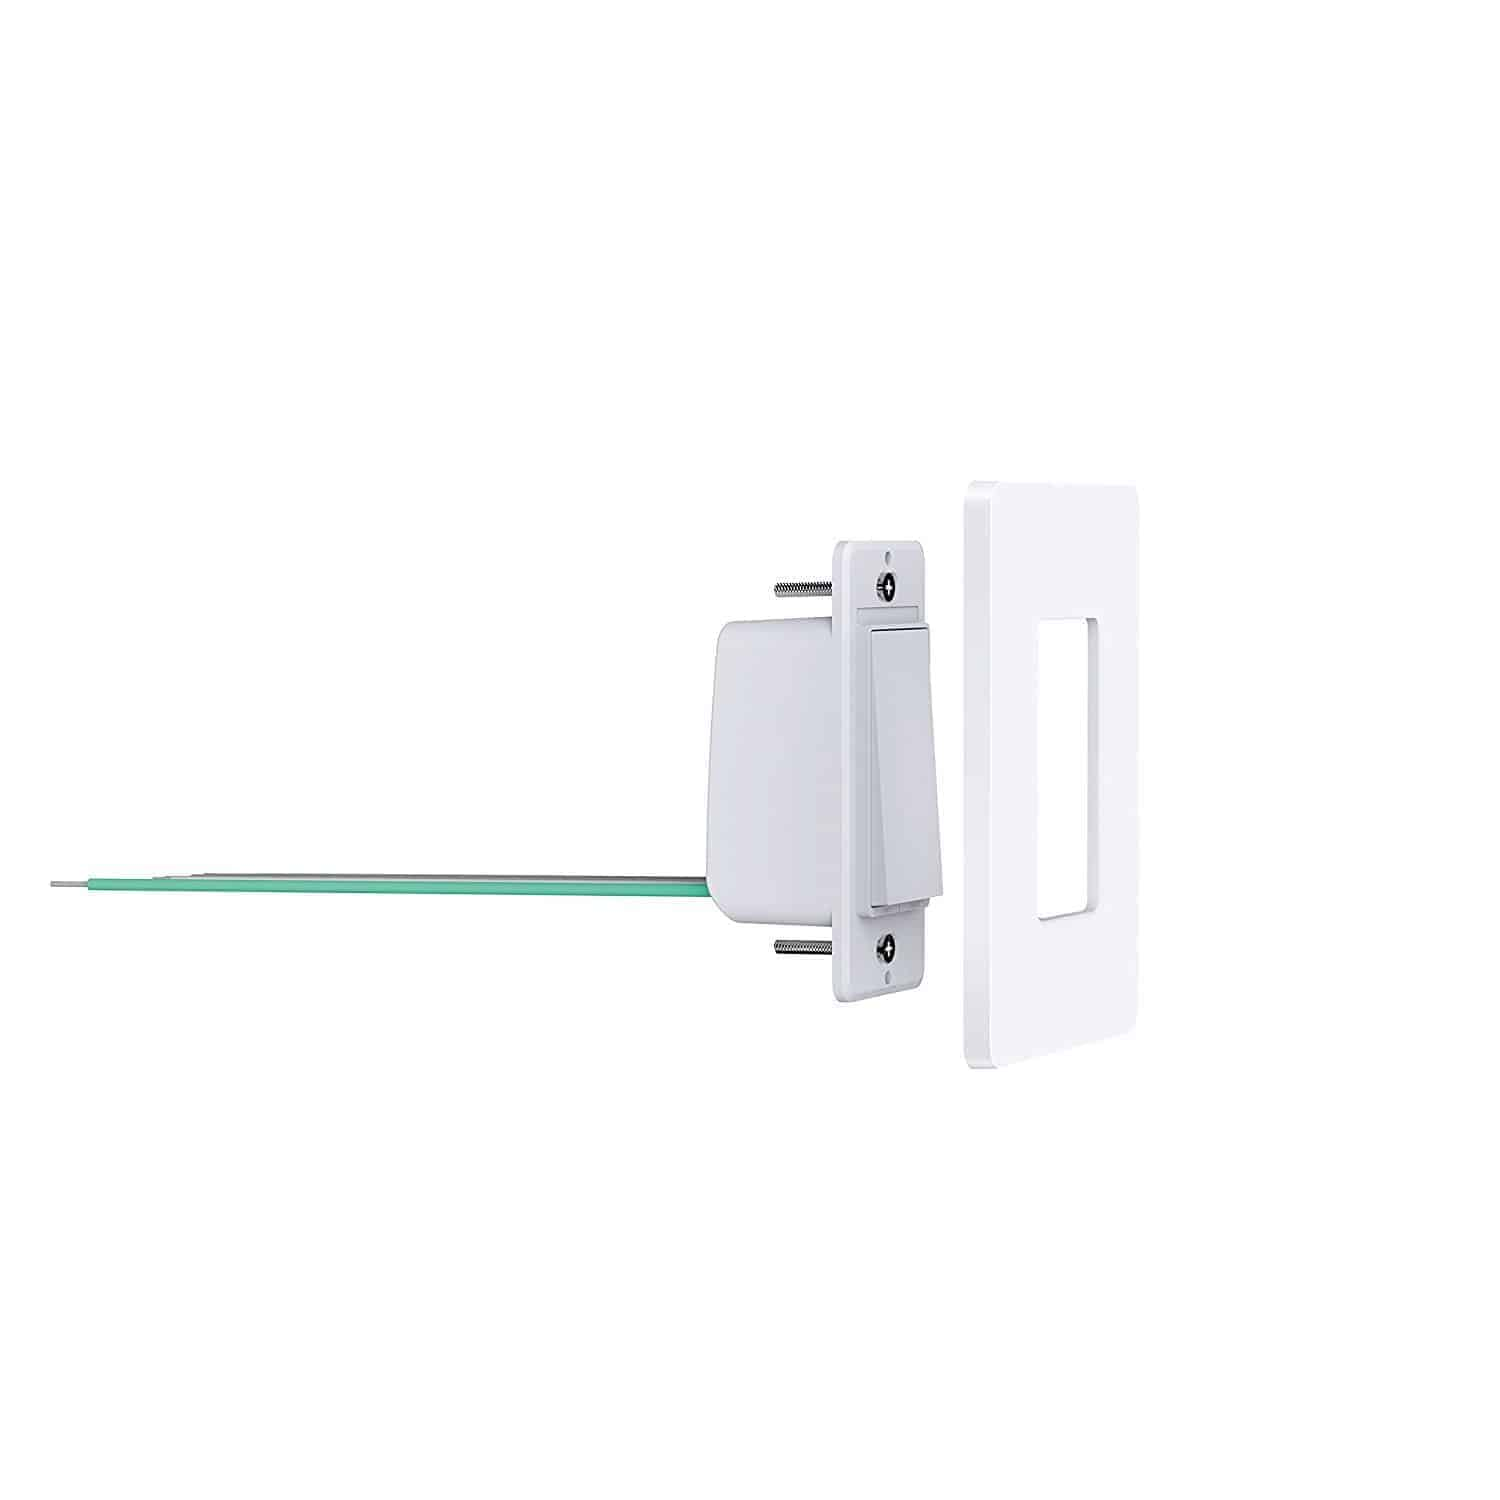 TP_Link_Smart_Wi_Fi_Light_Switch_HS200_features_1